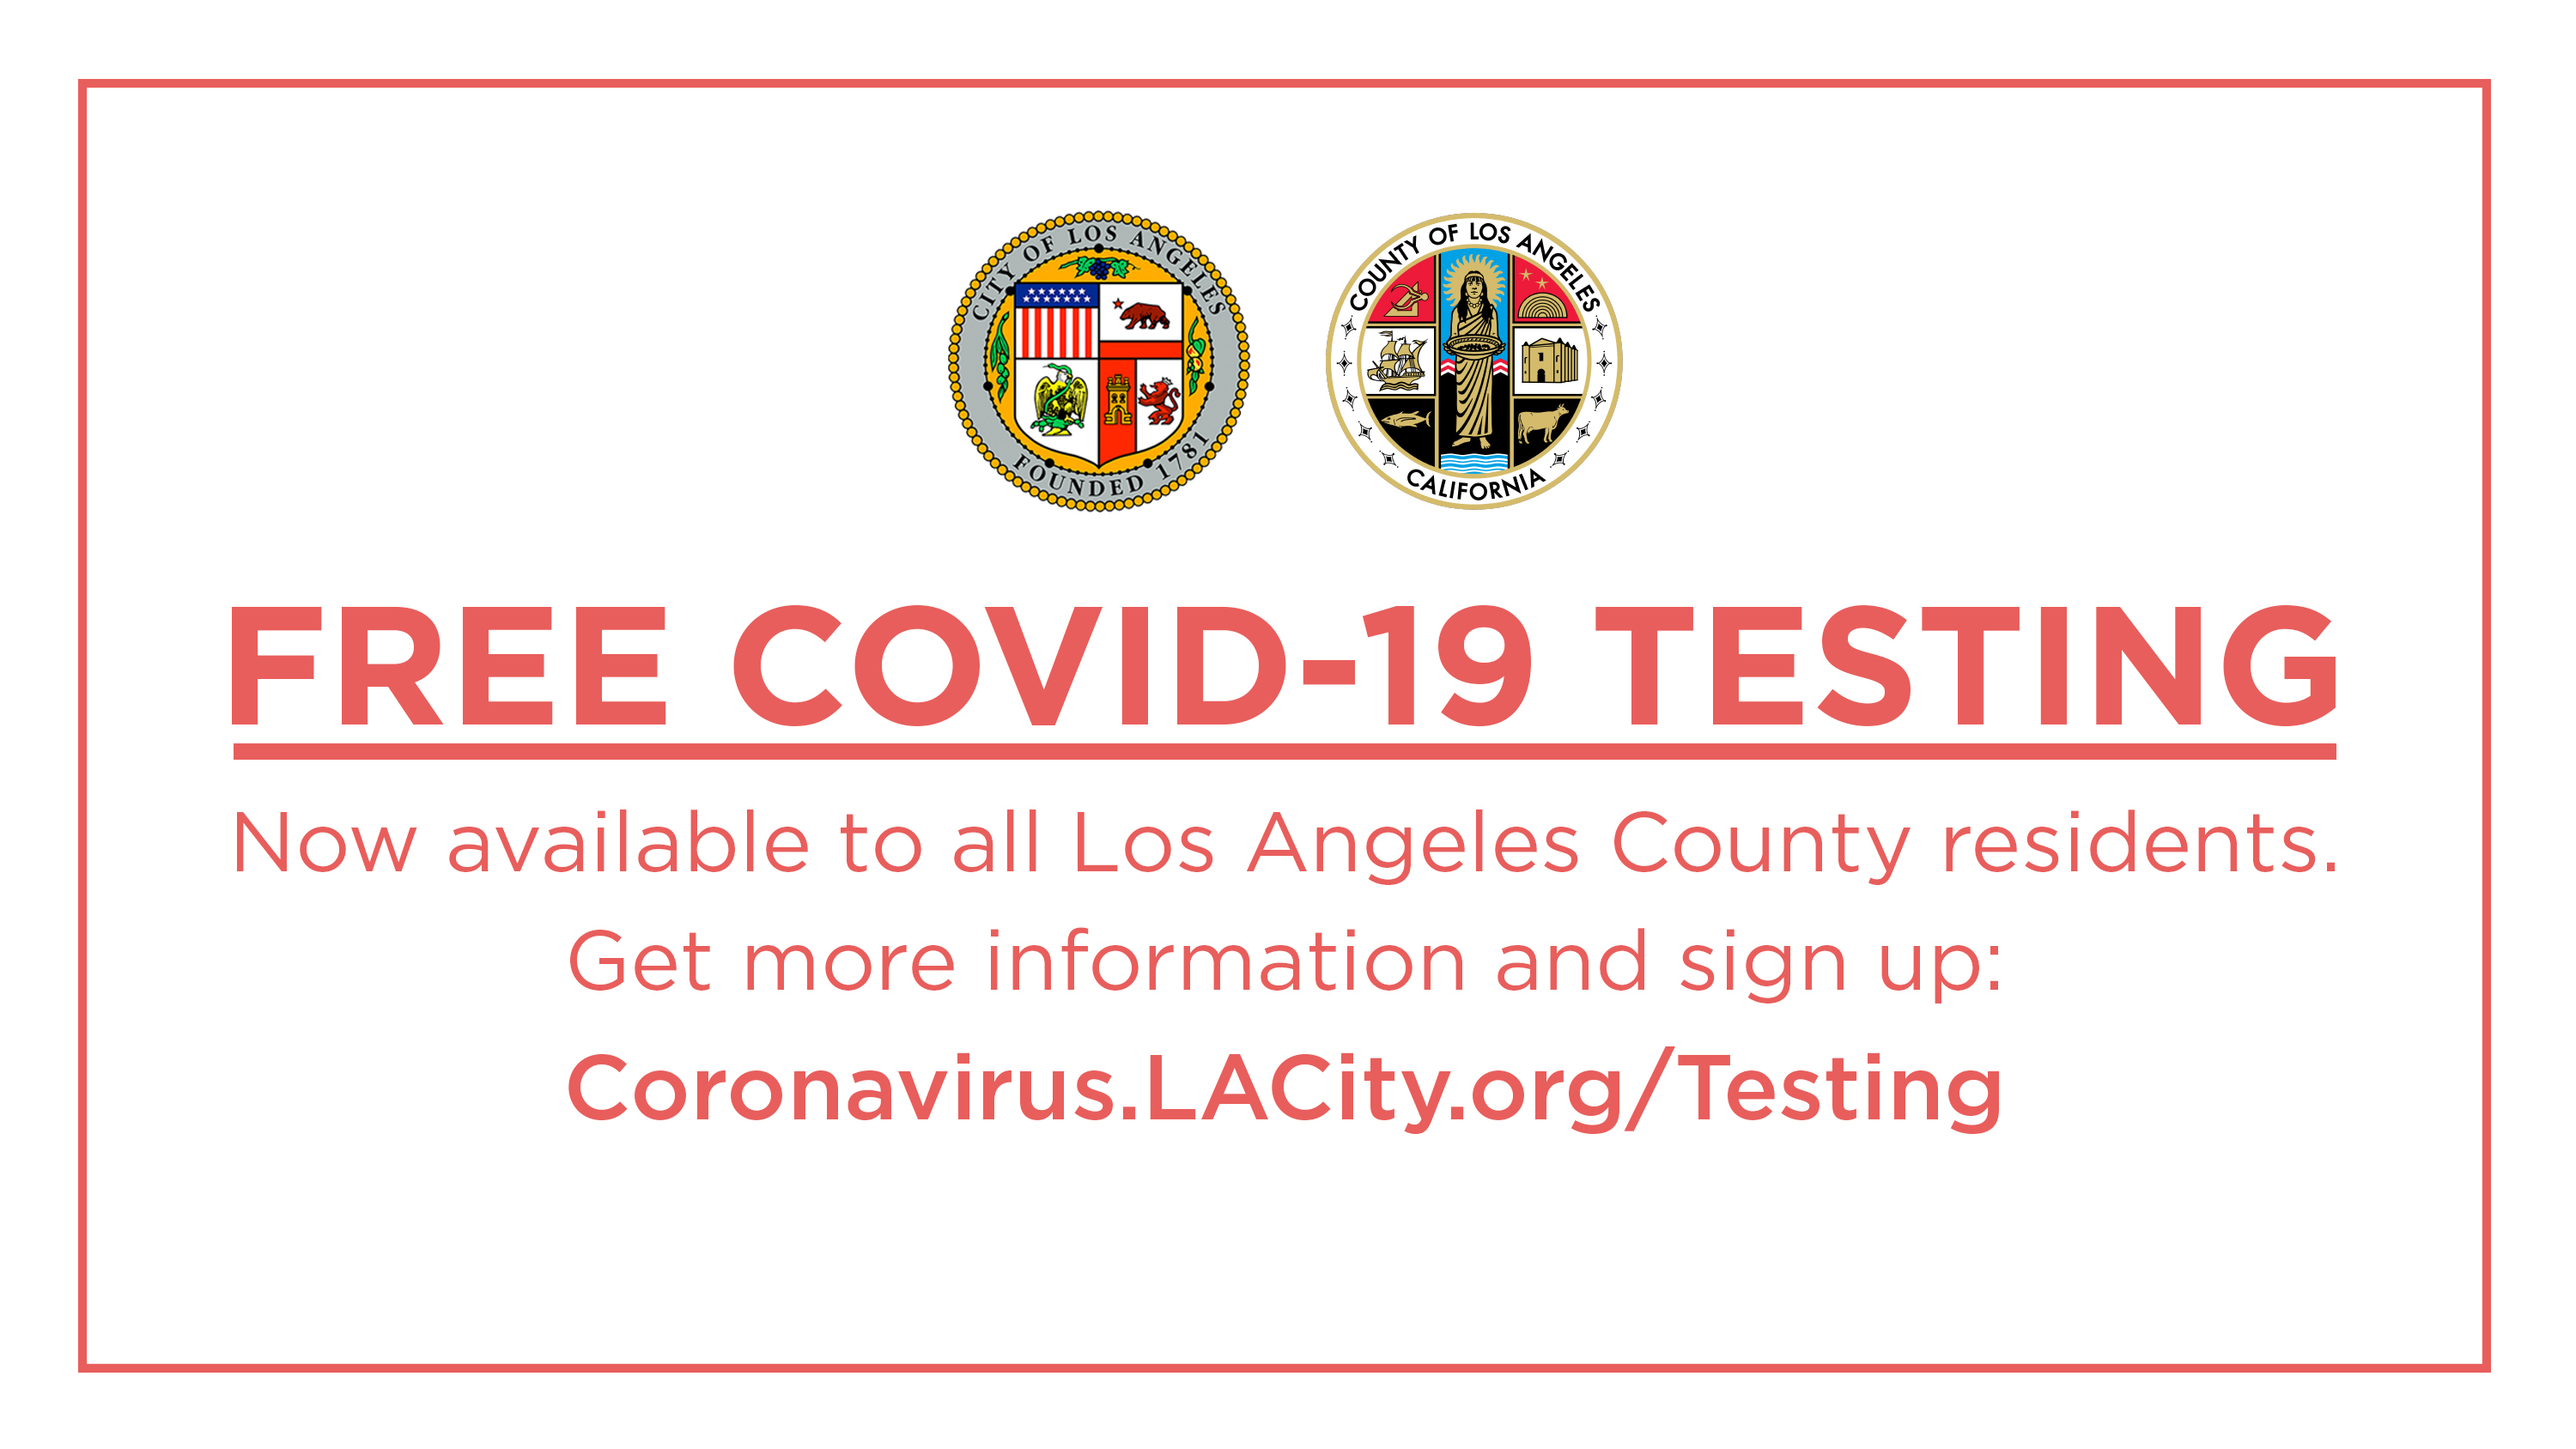 Free Covid-19 Testing. Now available to all LA County Residents. Get more info and Sign Up at Coronavirus.LACity.org/Testing